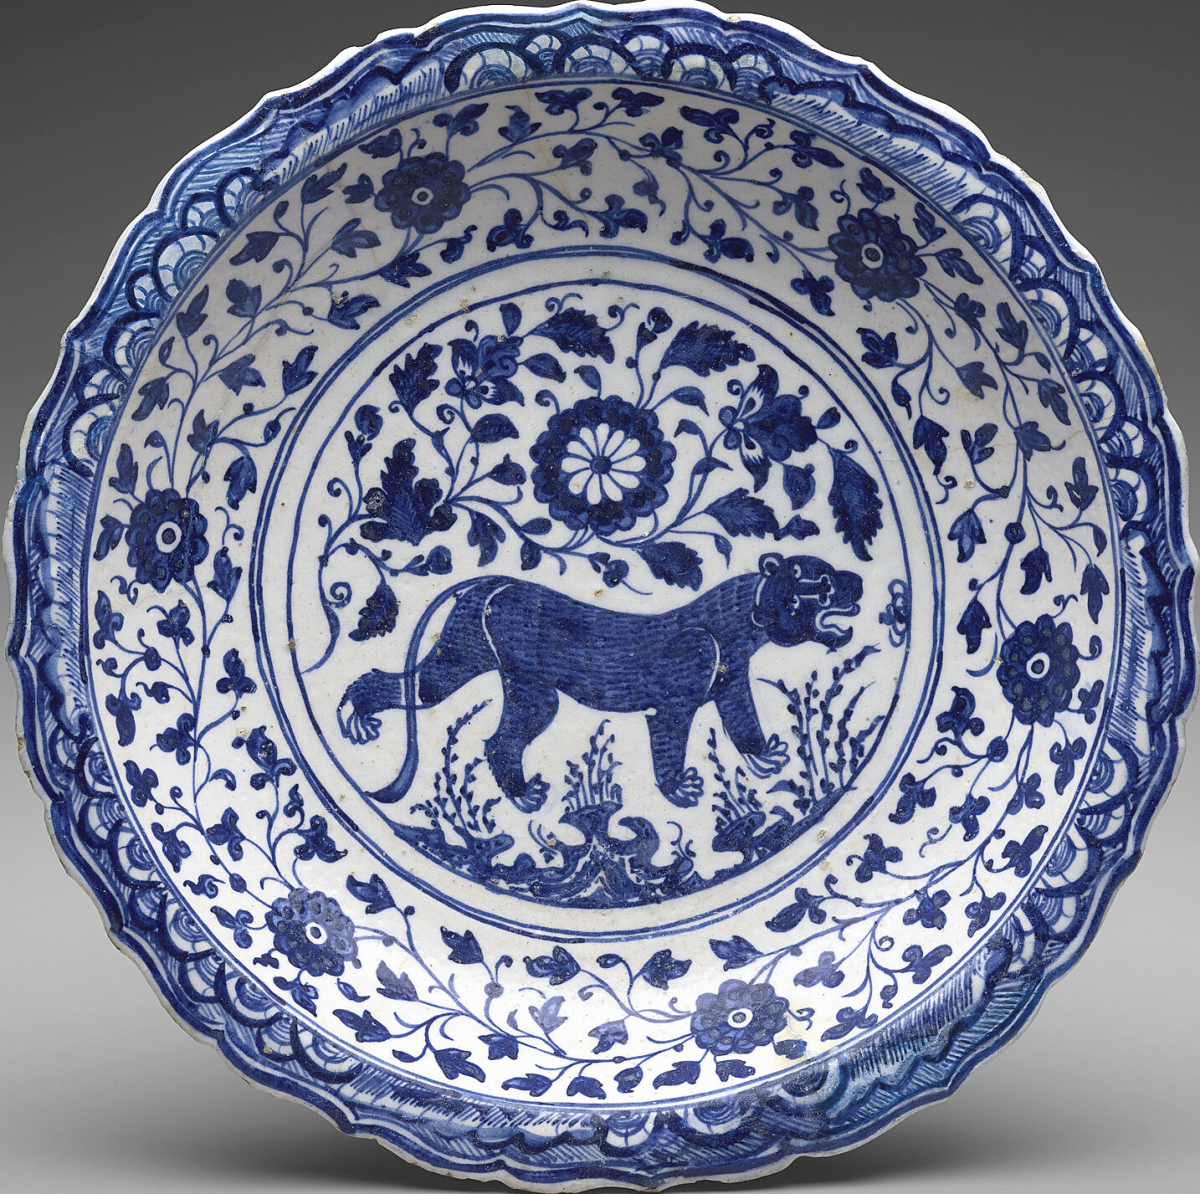 Dish, Persian, second half of the Fifteenth Century. Stonepaste painted in blue on white slip under transparent glaze. The Hossein Afshar Collection at the Museum of Fine Arts, Houston.